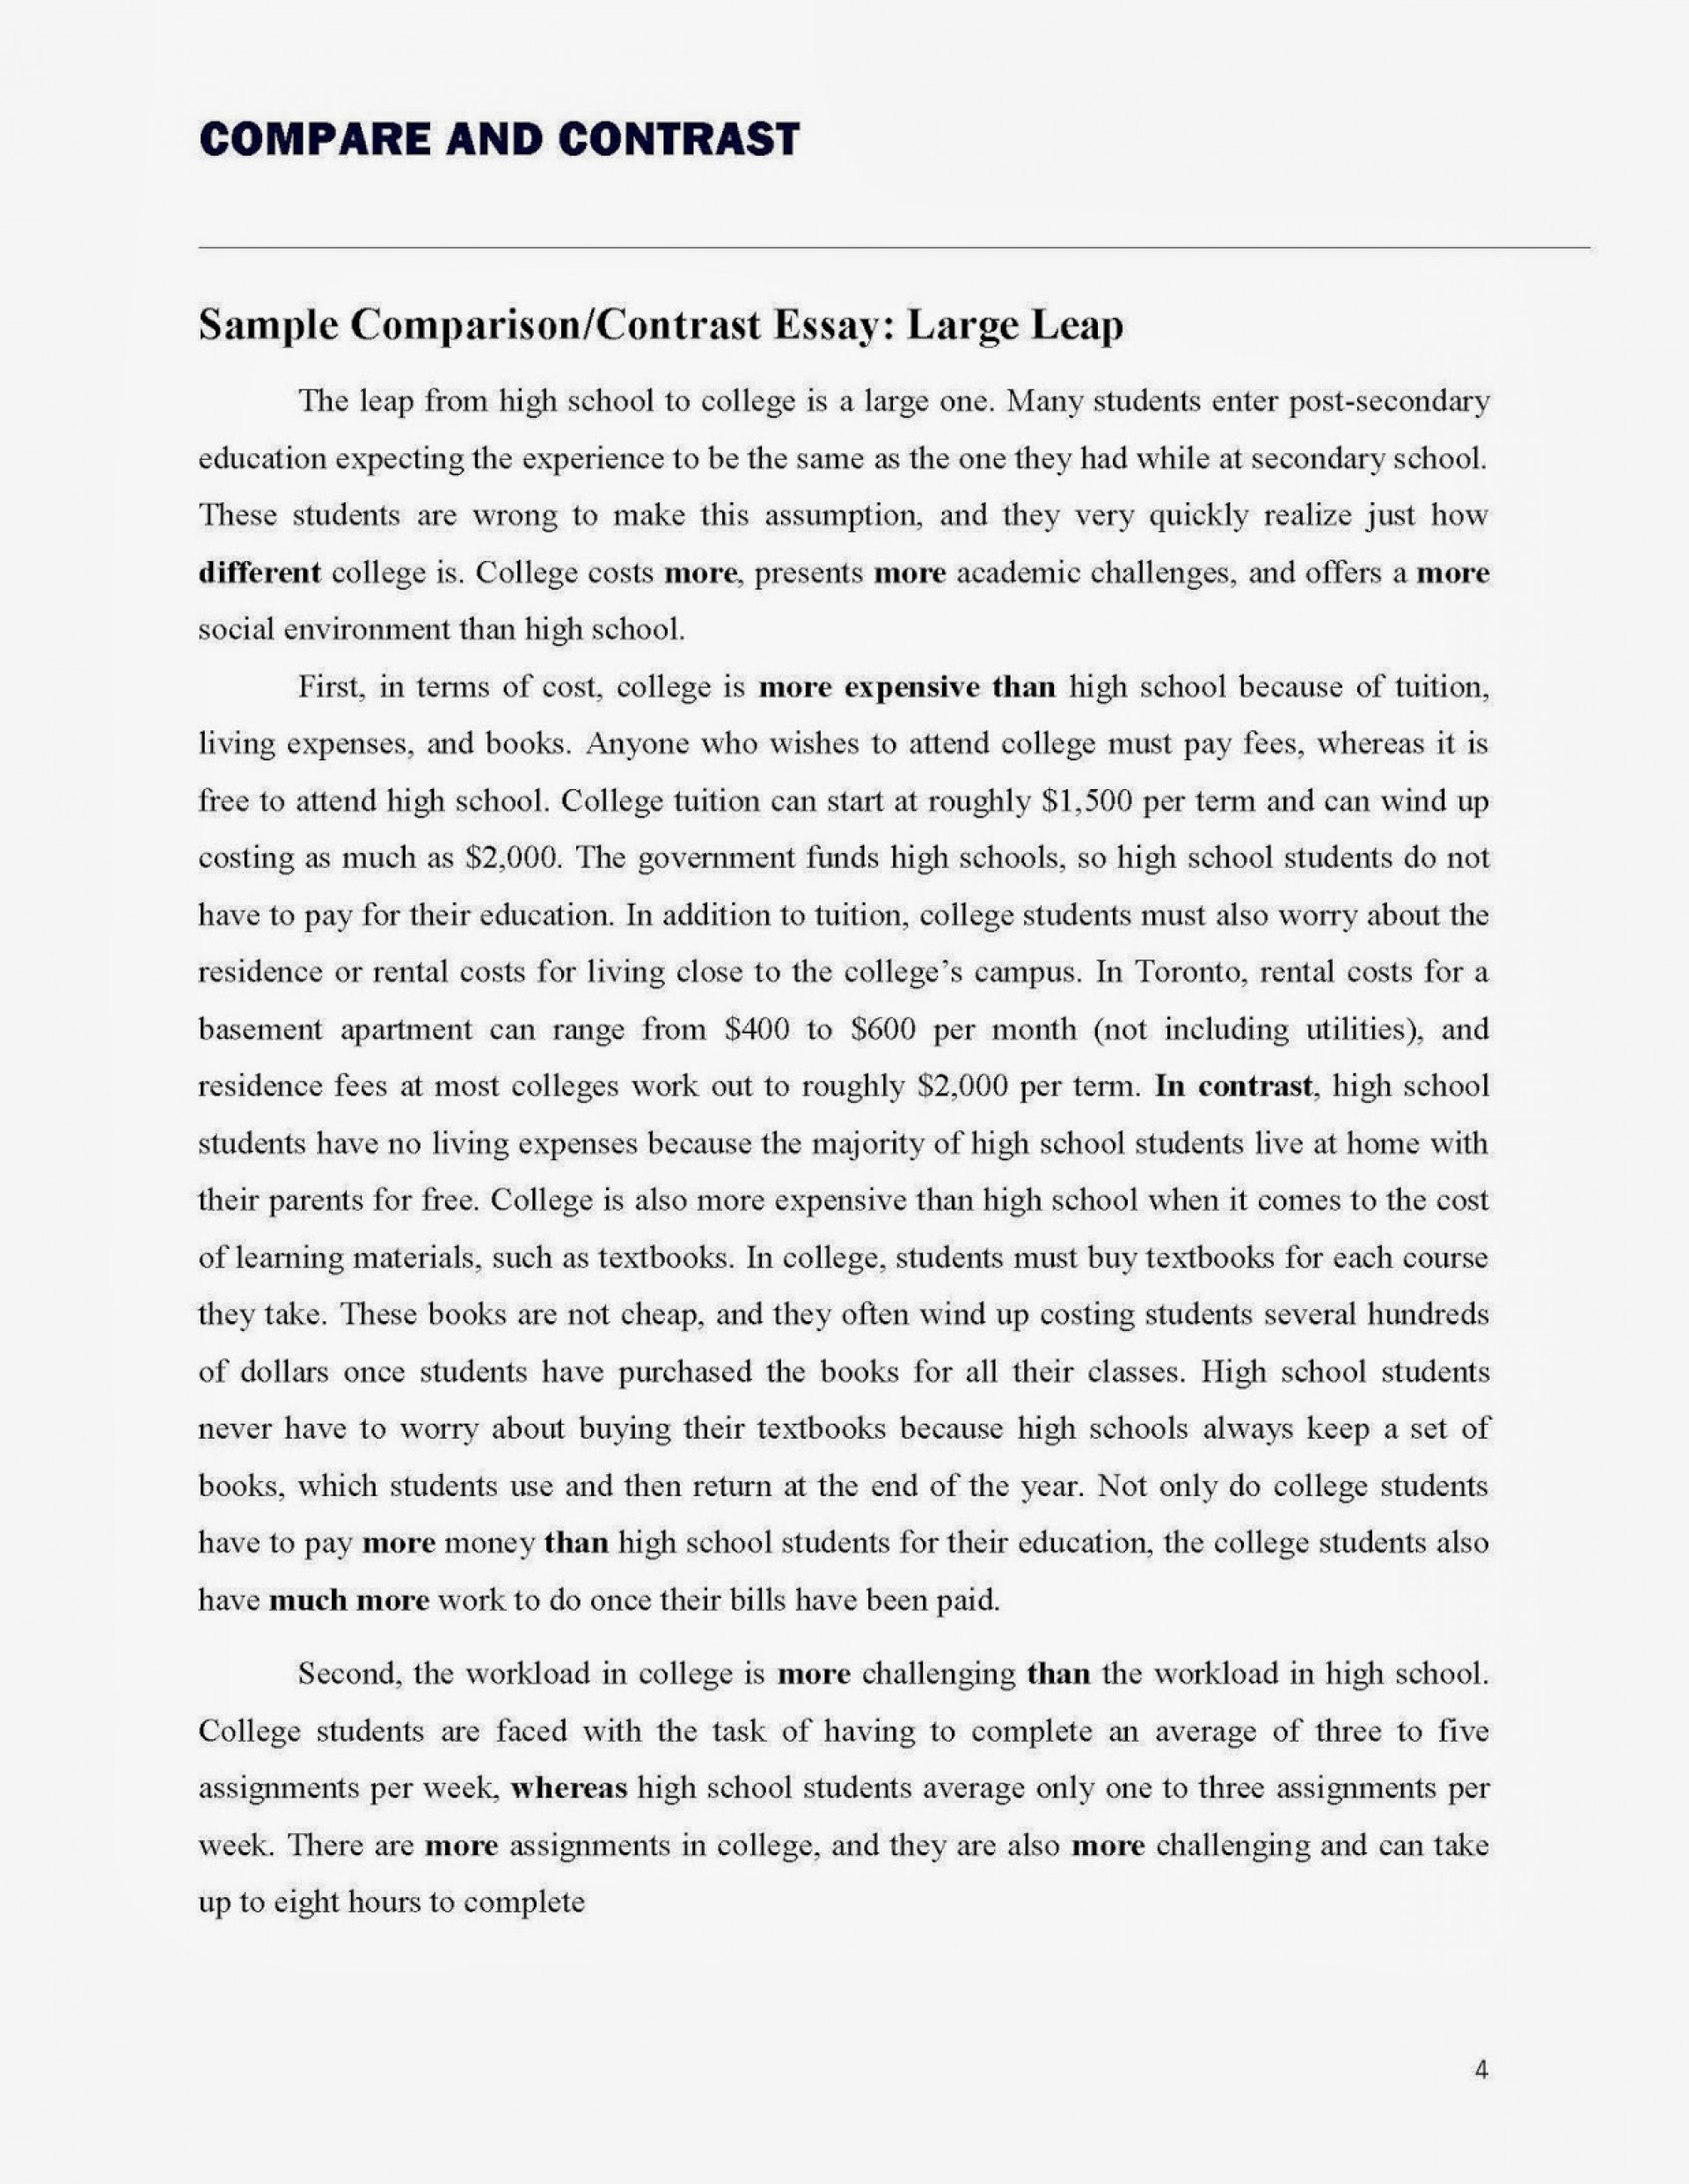 008 Essay Example Conclusion For Compare And Contrast Compare2band2bcontrast2bessay Page 4 Awesome How To Write A Paragraph Examples 1920